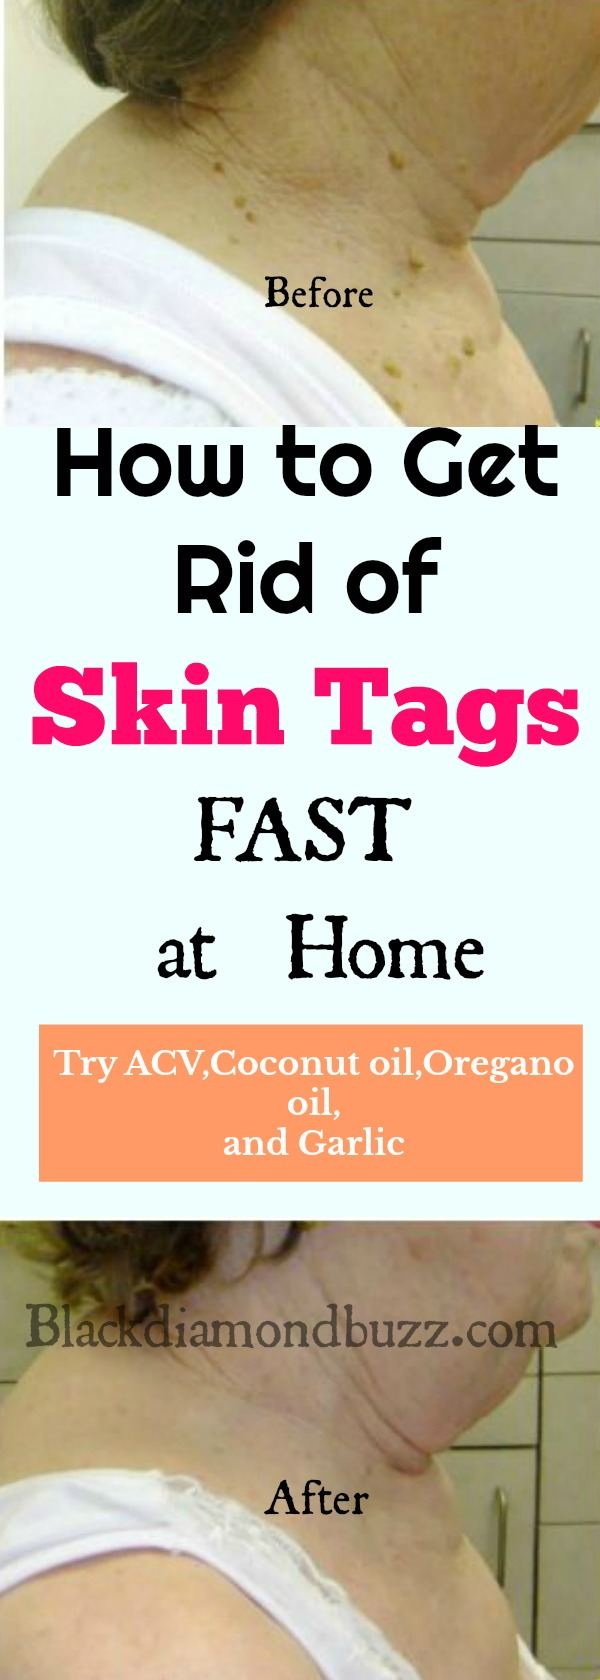 How to Remove Skin Tags Fast : Home Remedies and Causes of Skin Tags